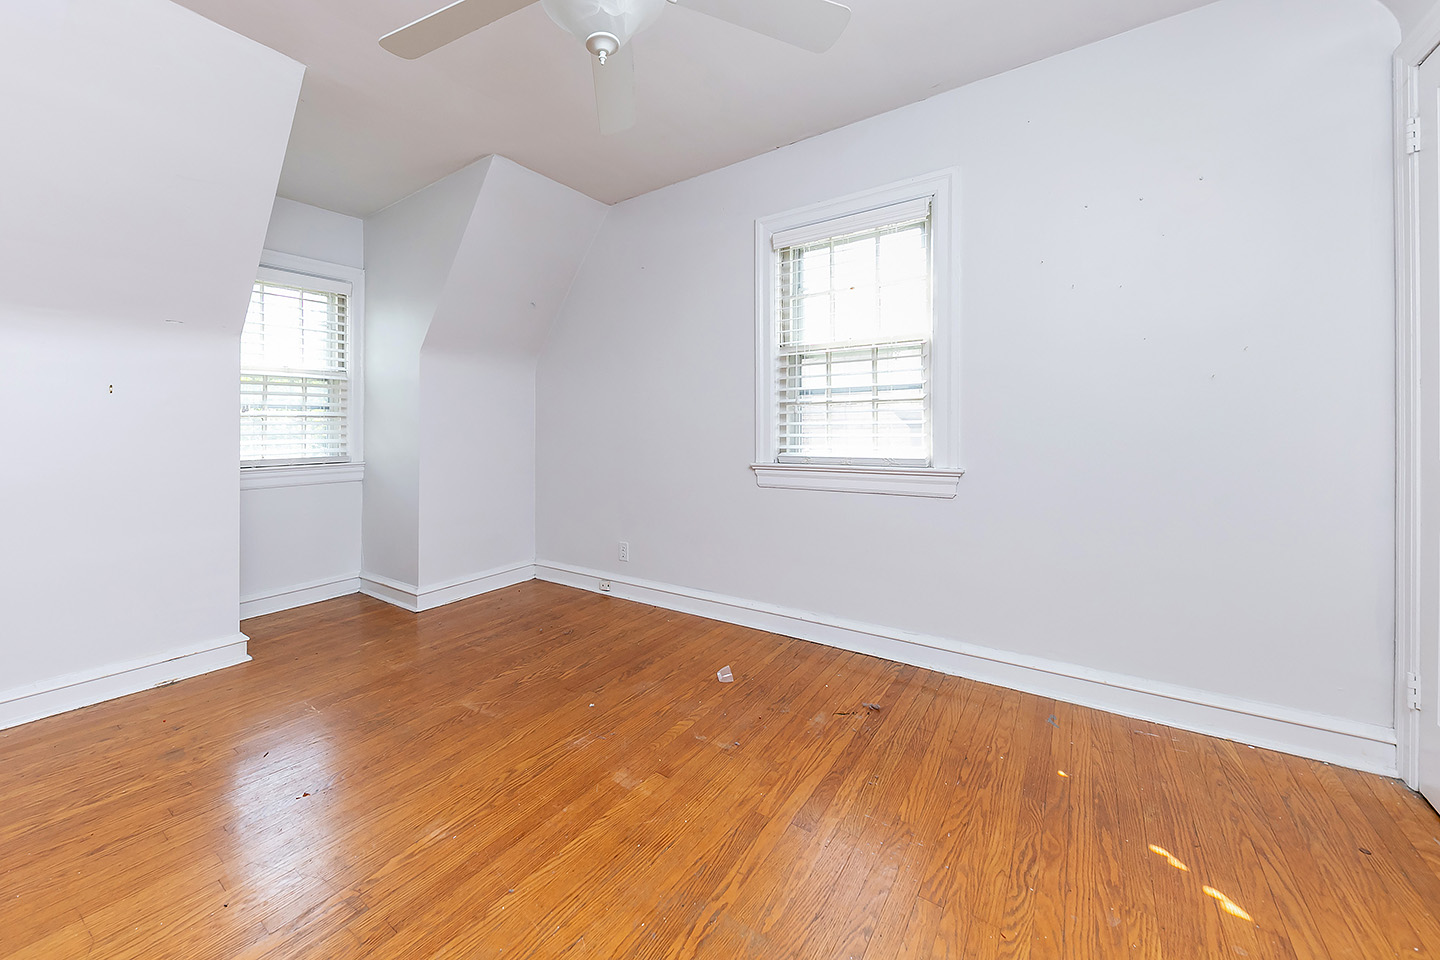 168 Richey Ave, Collingswood NJ 08107